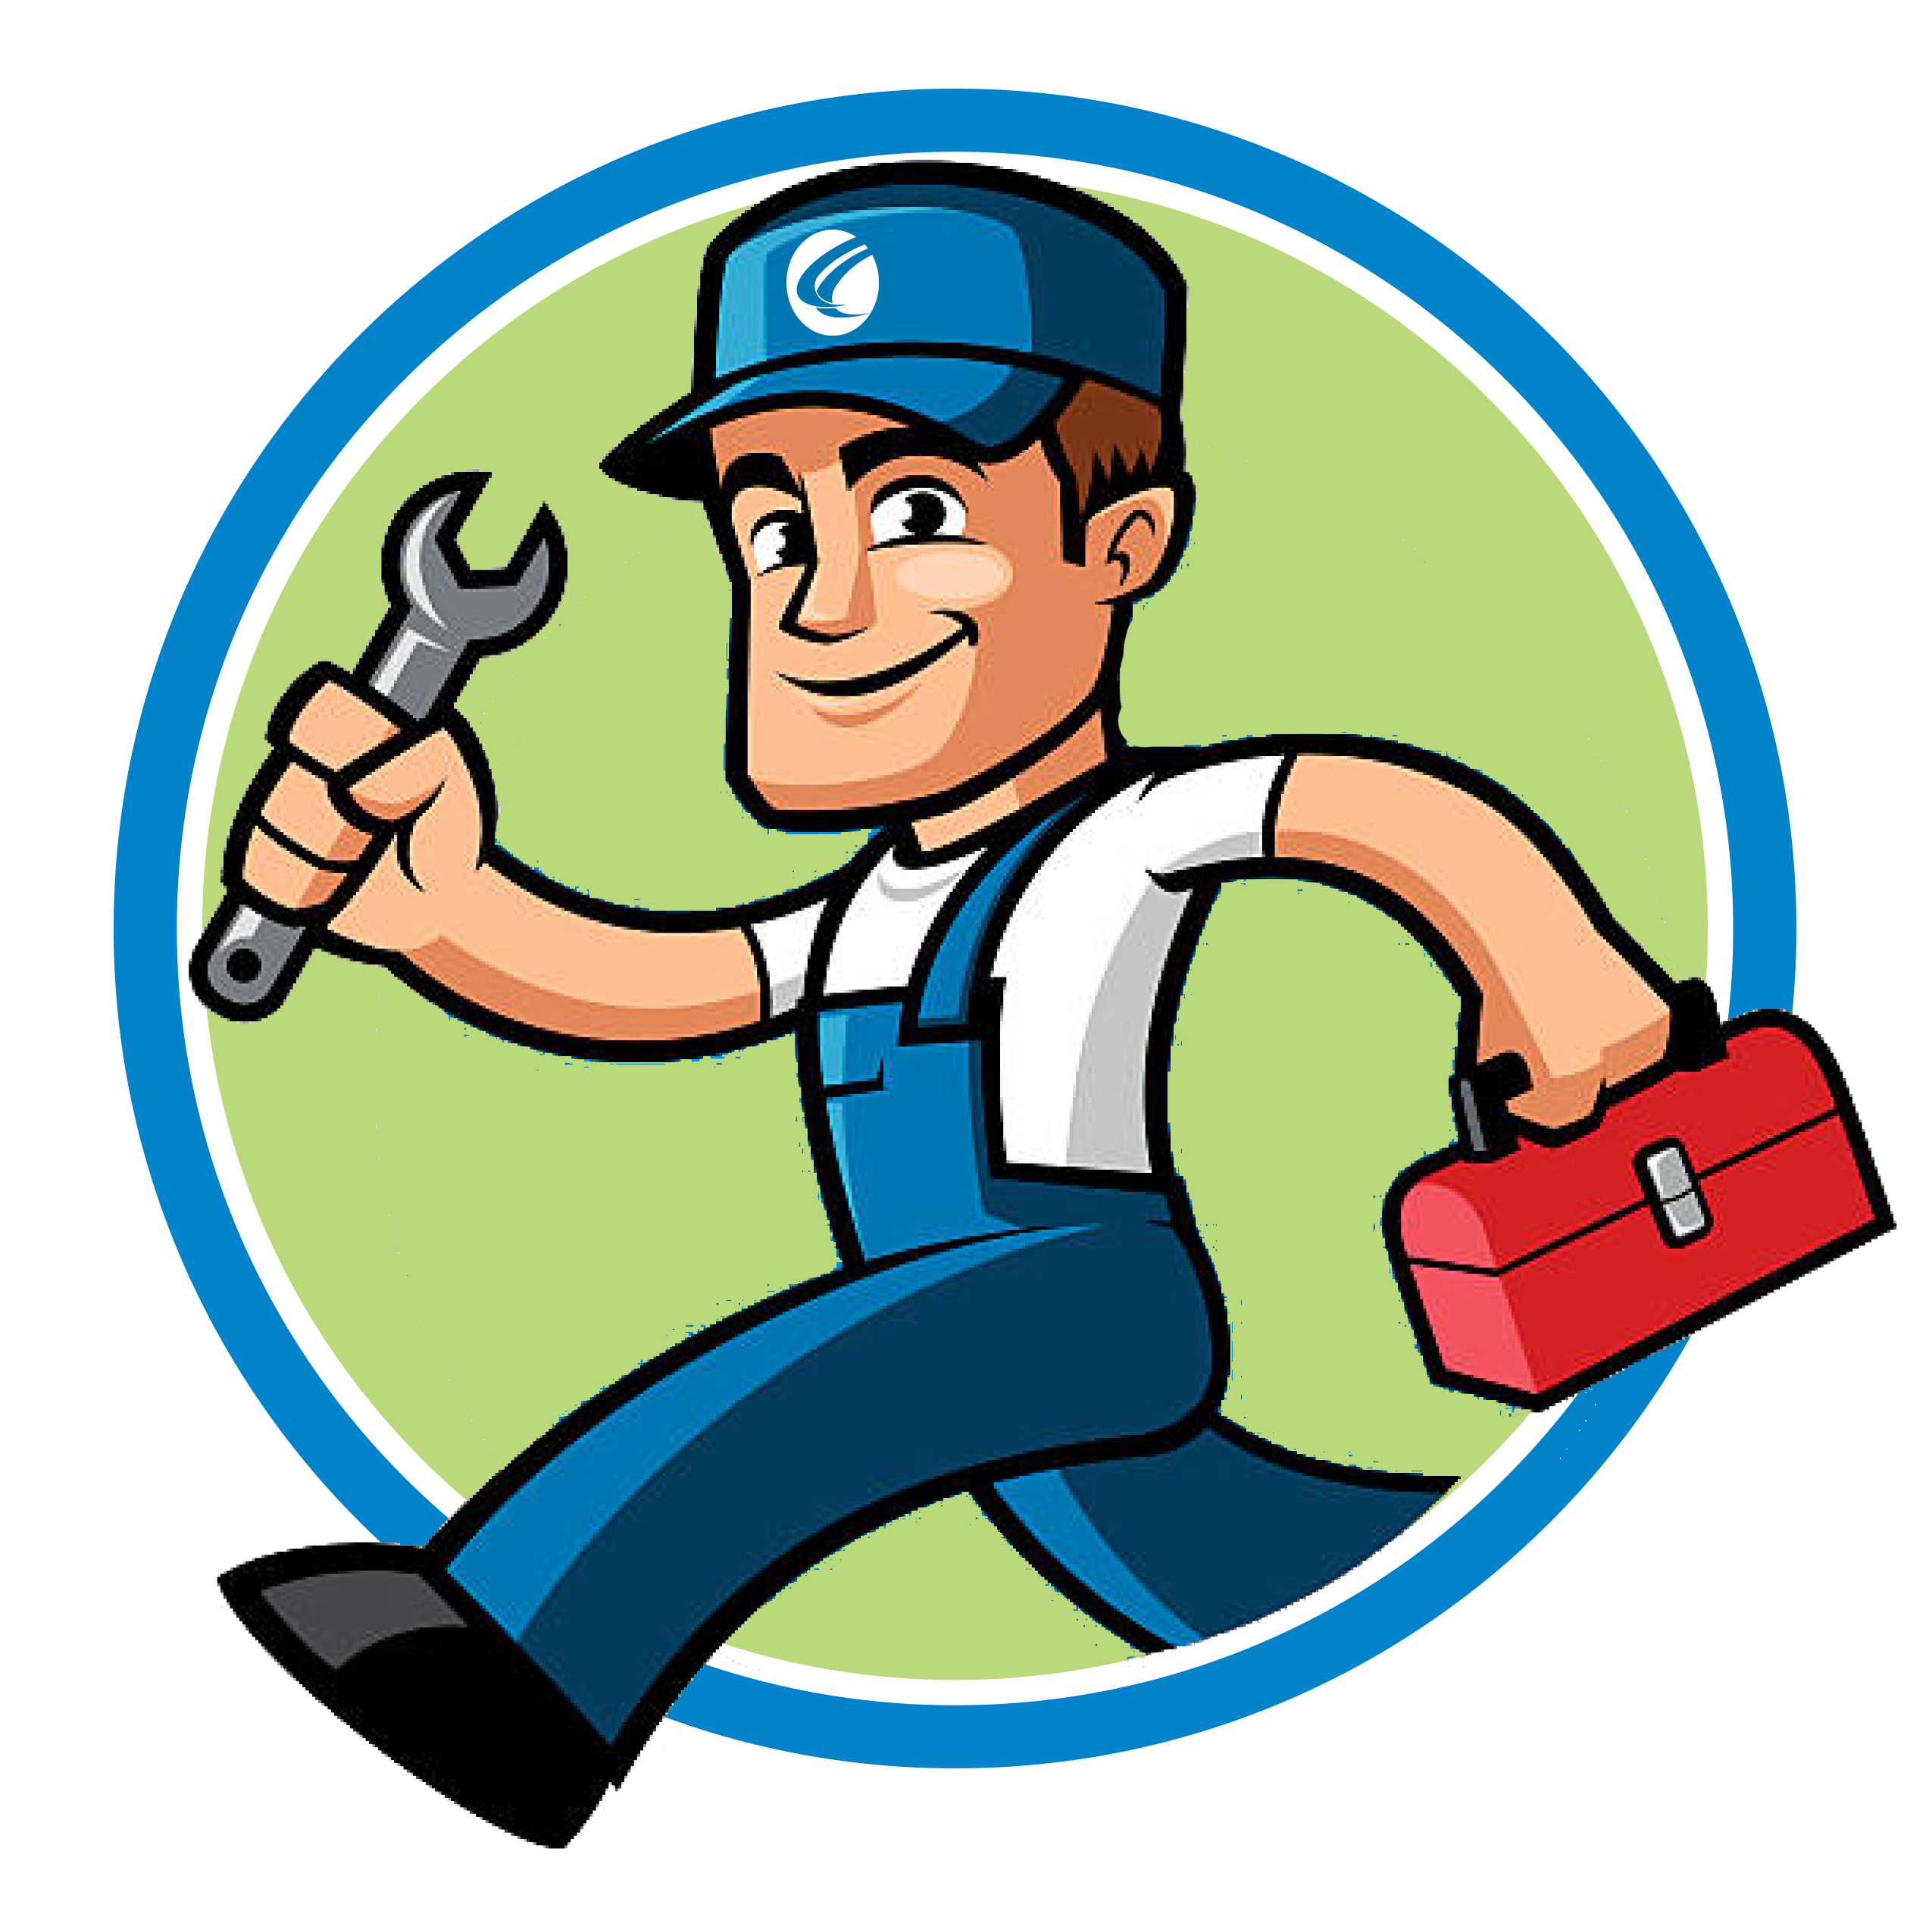 Handy_Man_Cartoon_0